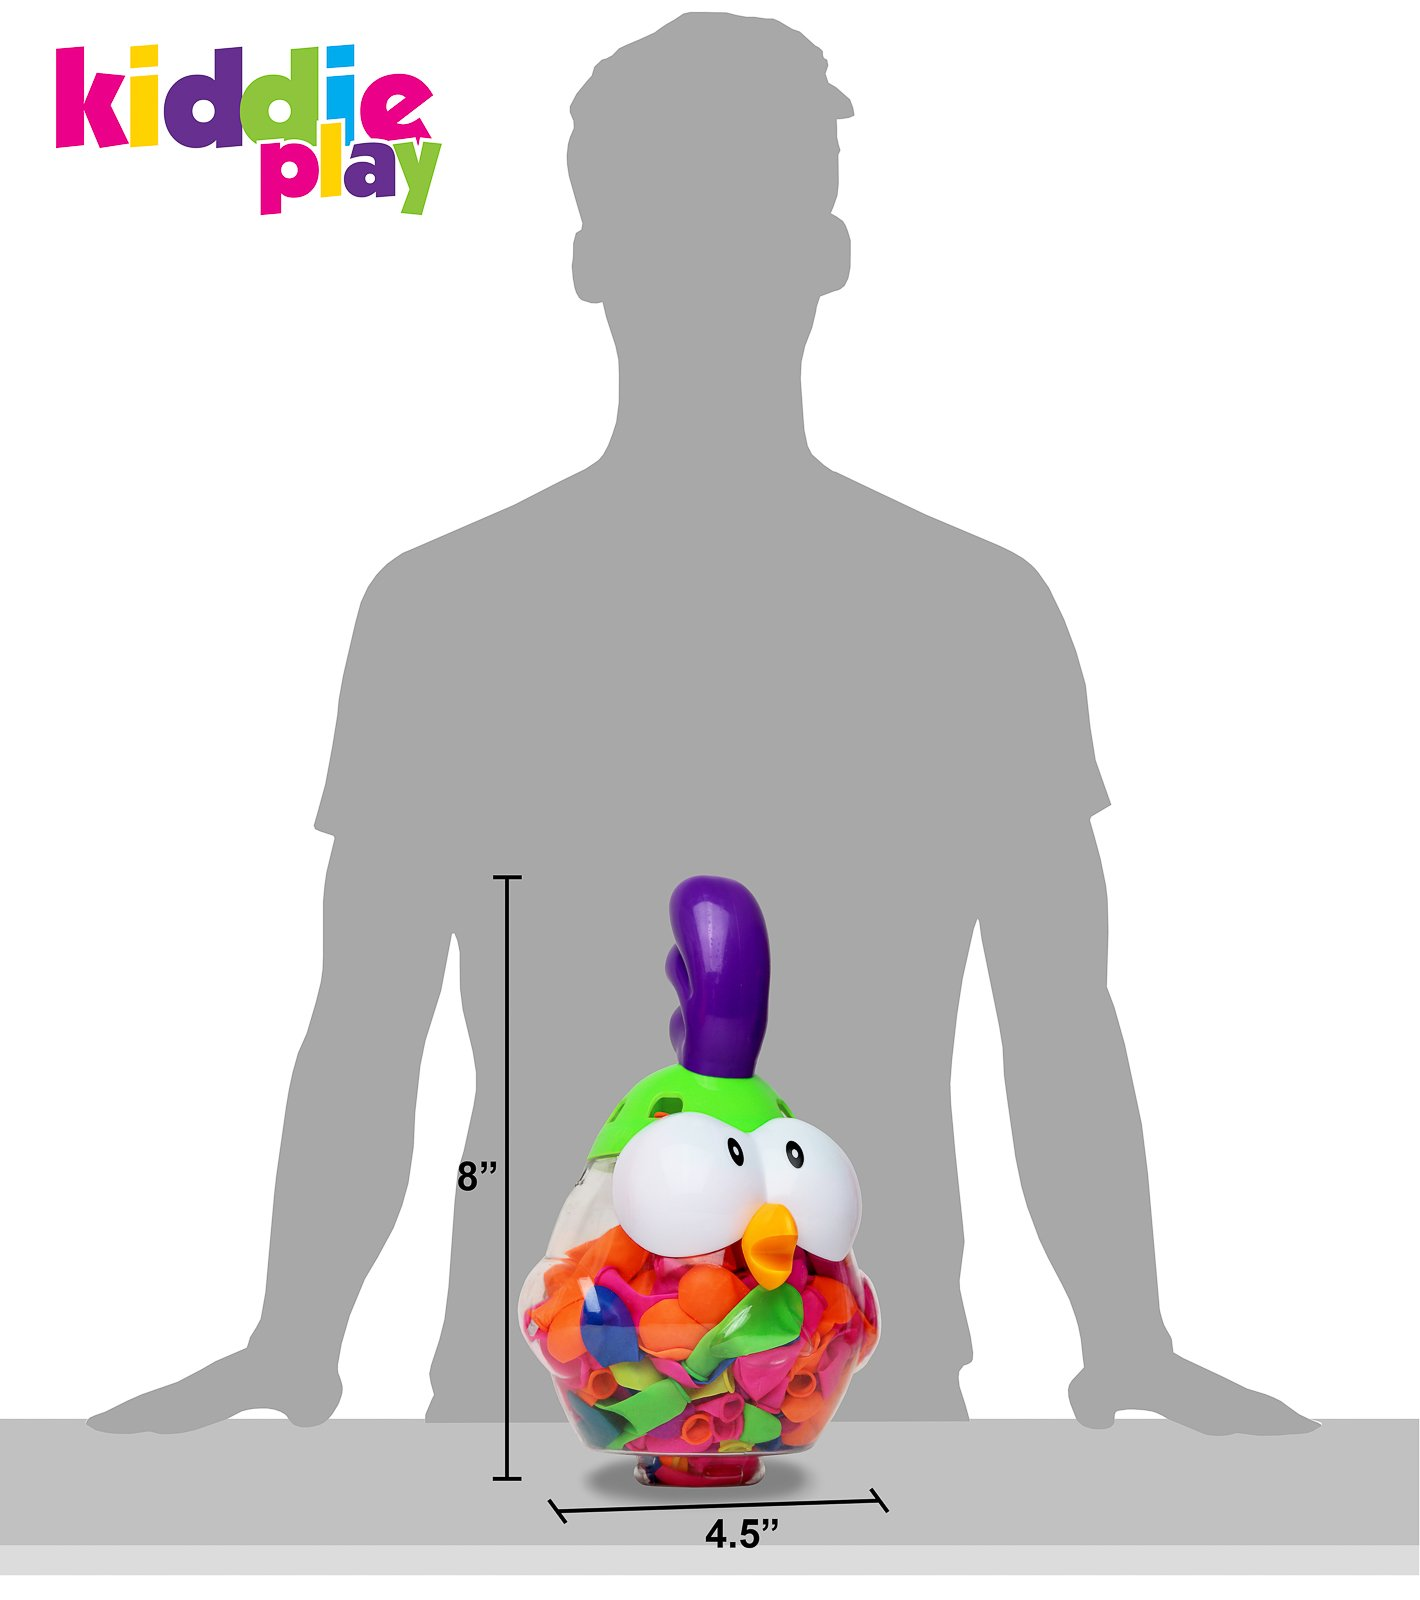 Kiddie Play Water Balloons for Kids with Filler Pump (250 Balloons) by Kiddie Play (Image #4)